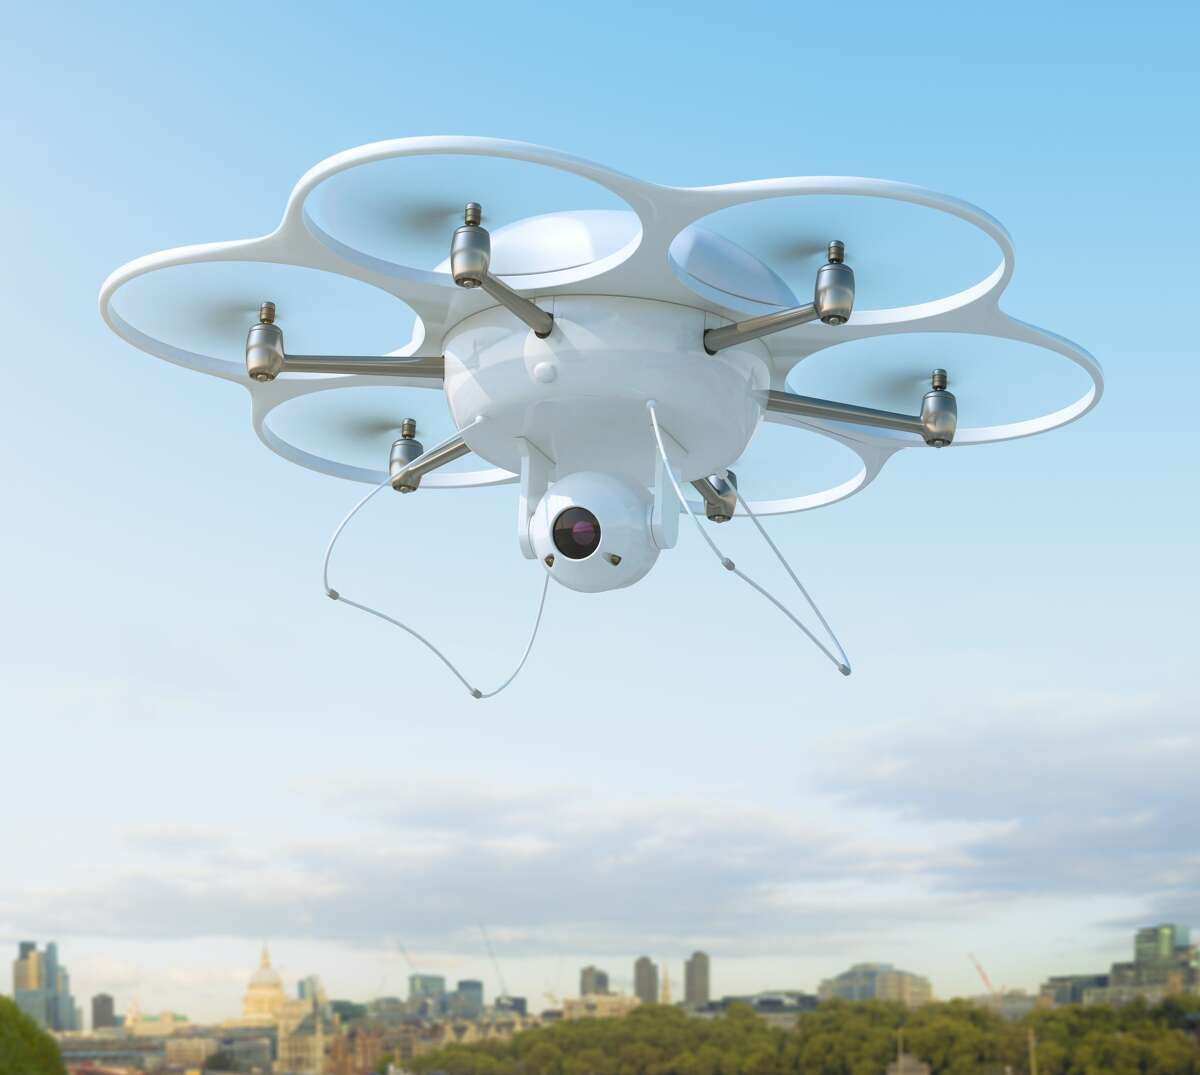 Photo illustration -- A drone (not the one pictured) was seen outside of an Ariana Grande concert and a Sacramento State fundraiser dinner, dropping flyers with anti-media sentiments onto crowds below.